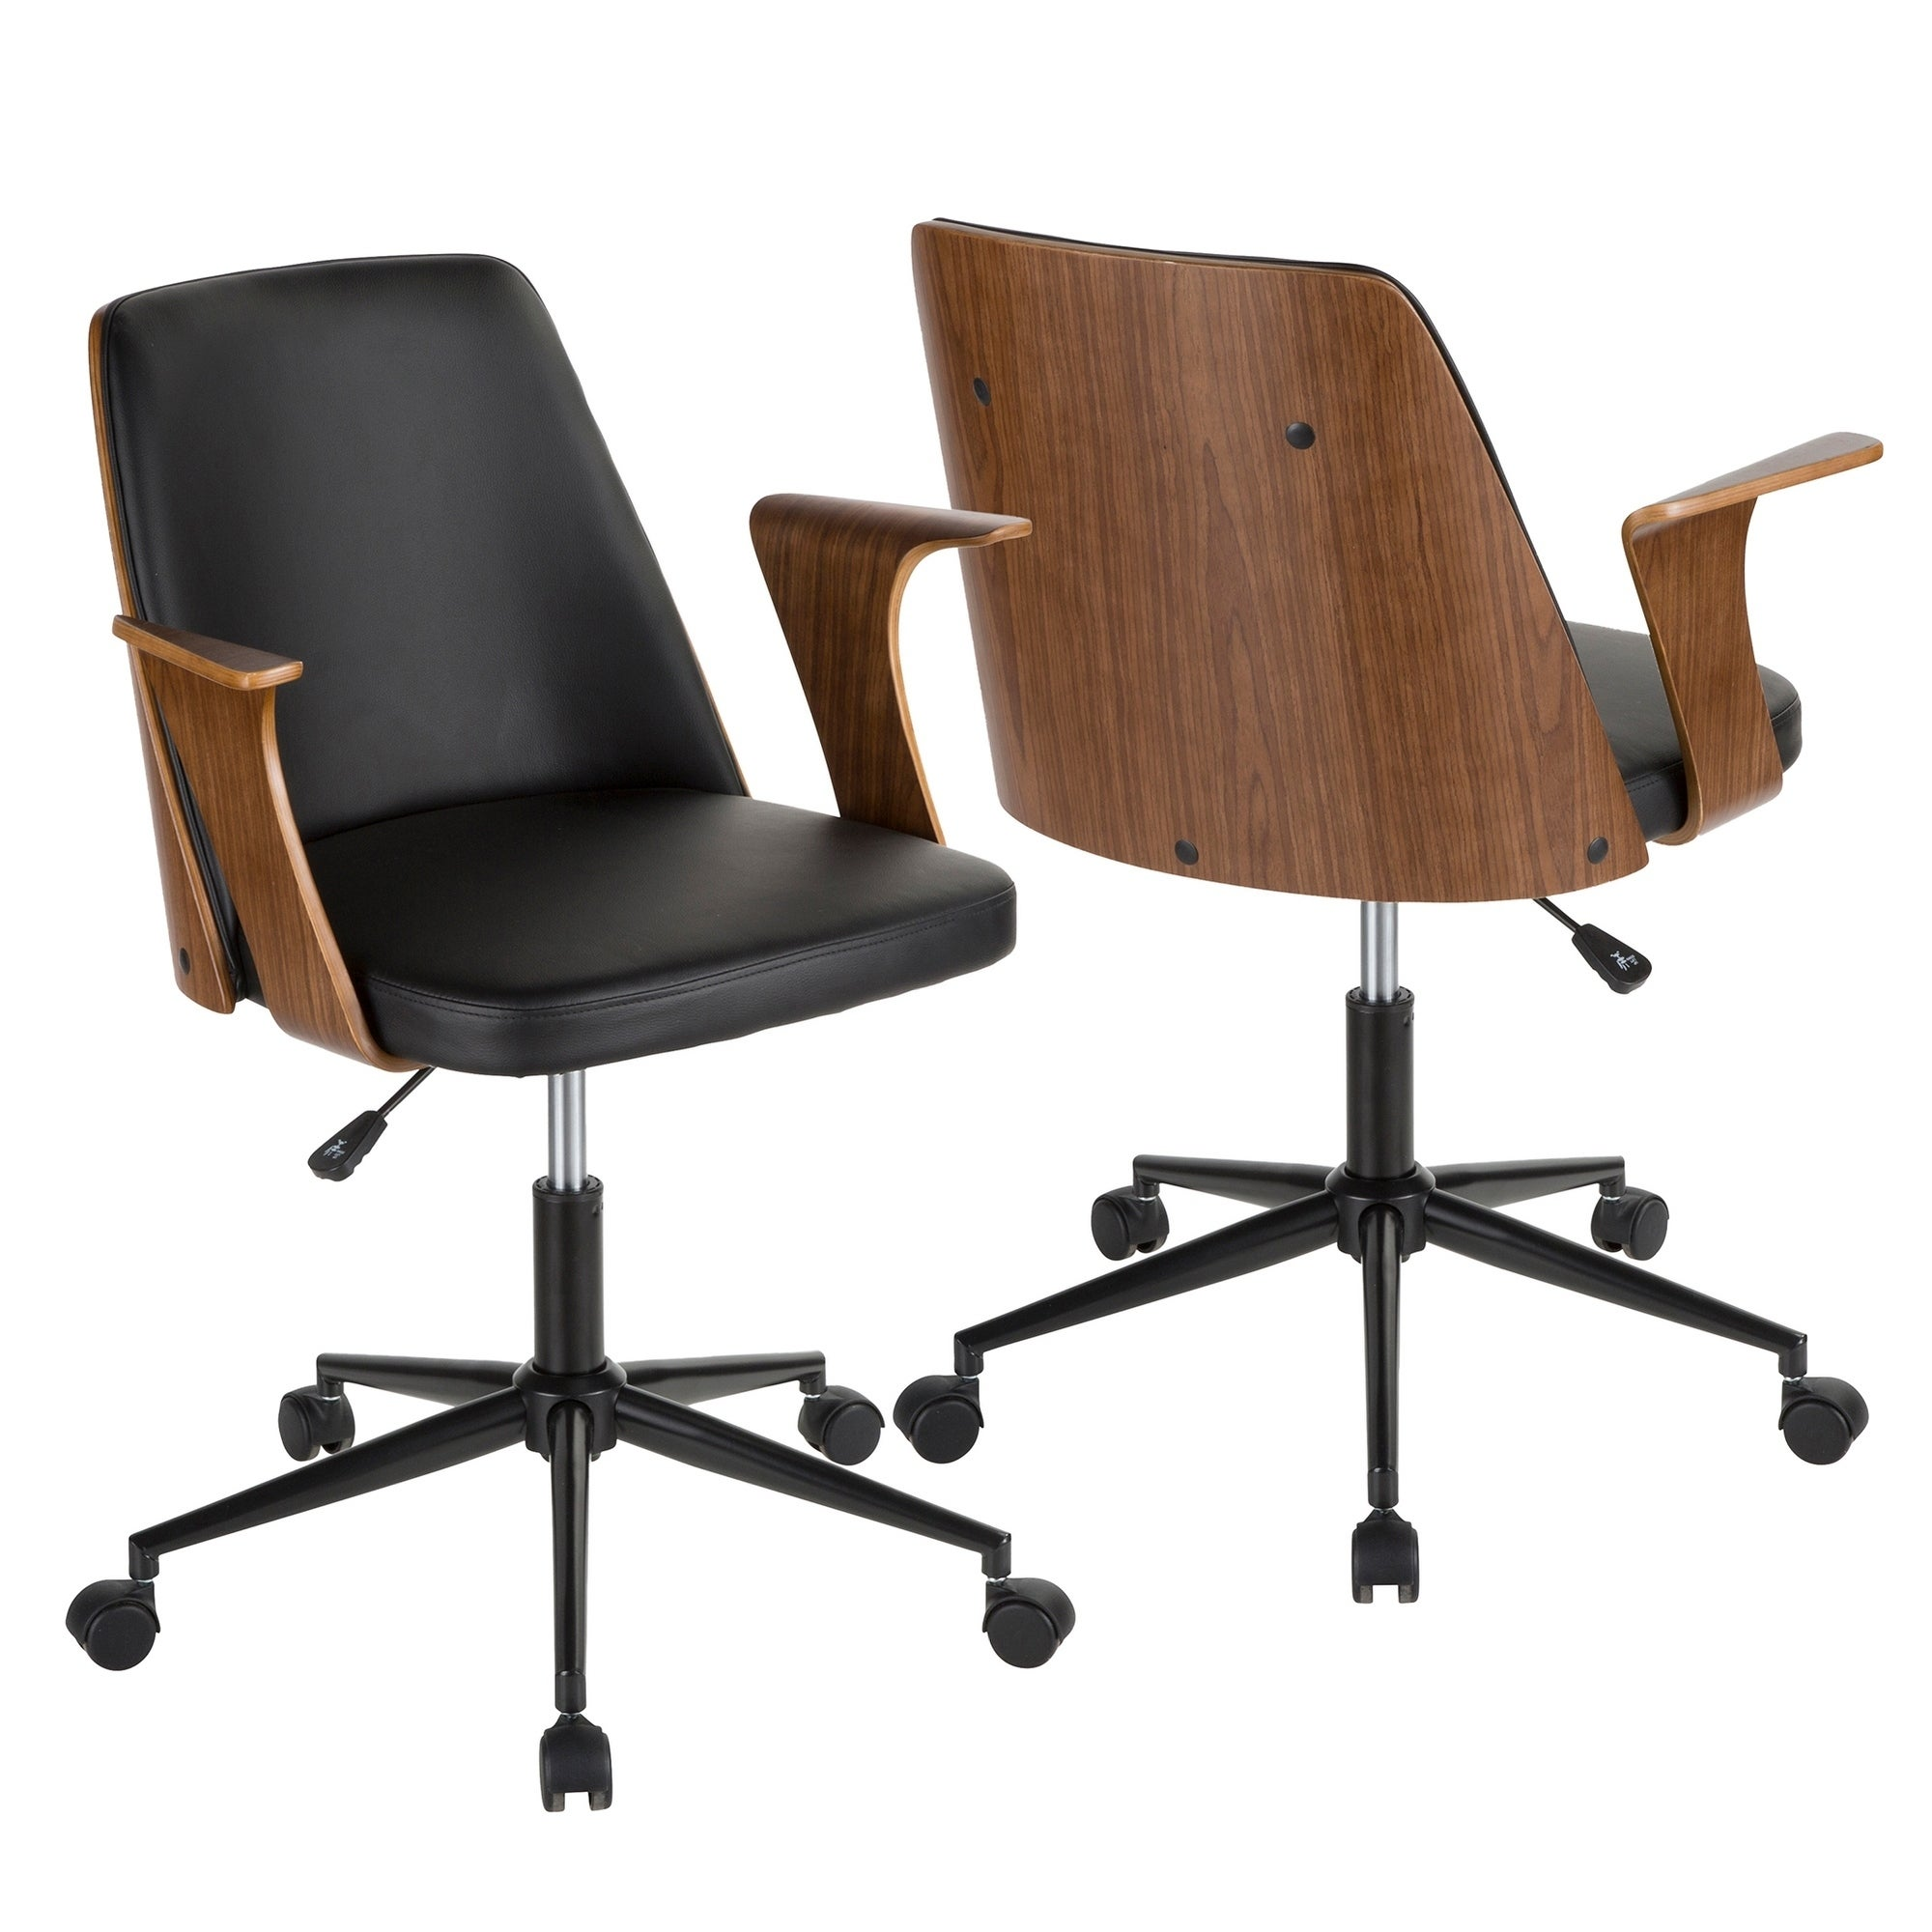 Verdana Mid Century Modern Upholstered Office Chair With Wood Accents Free Shipping Today 20360900